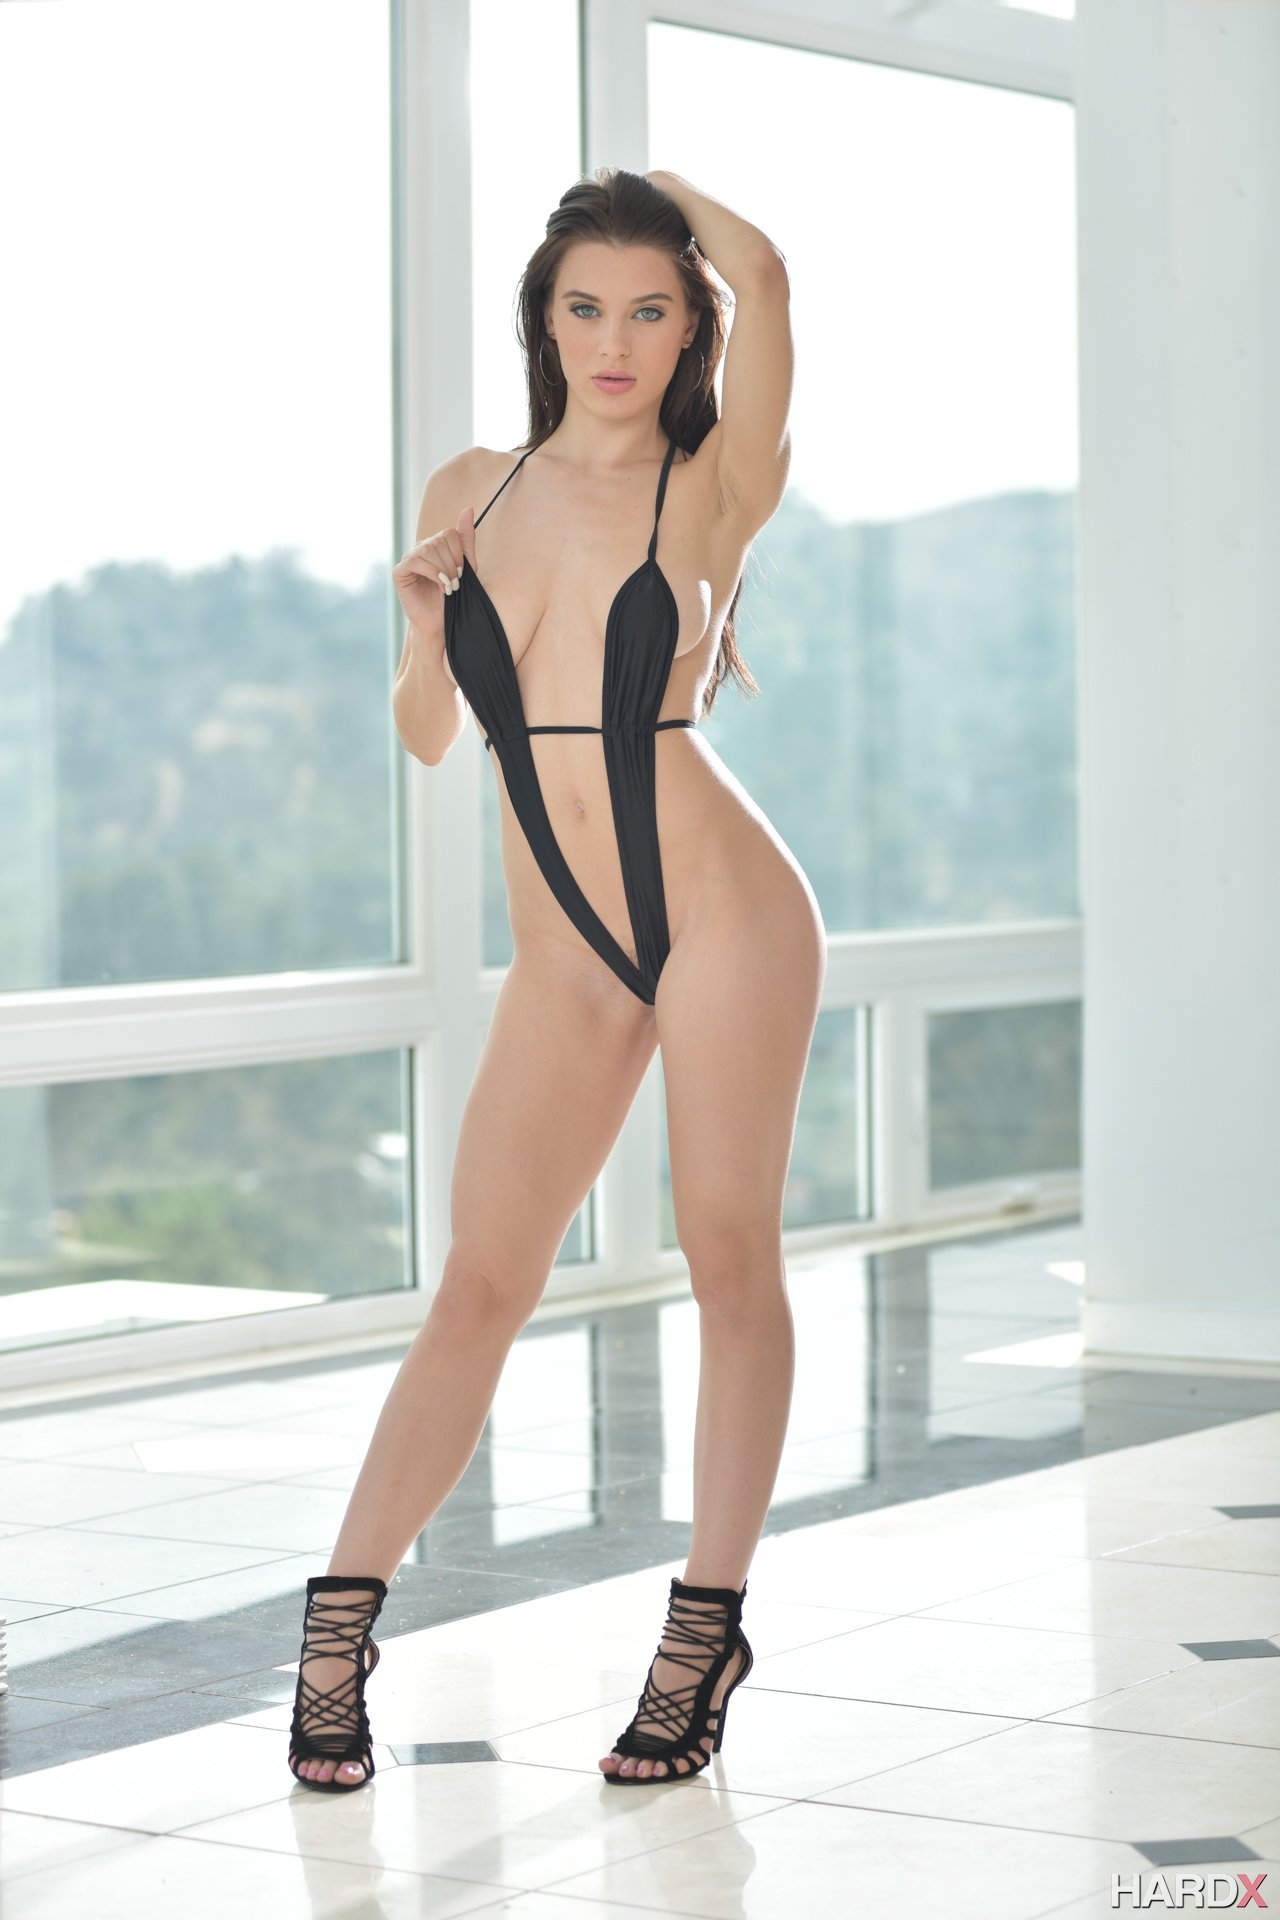 Lana rhoades latest vidoes